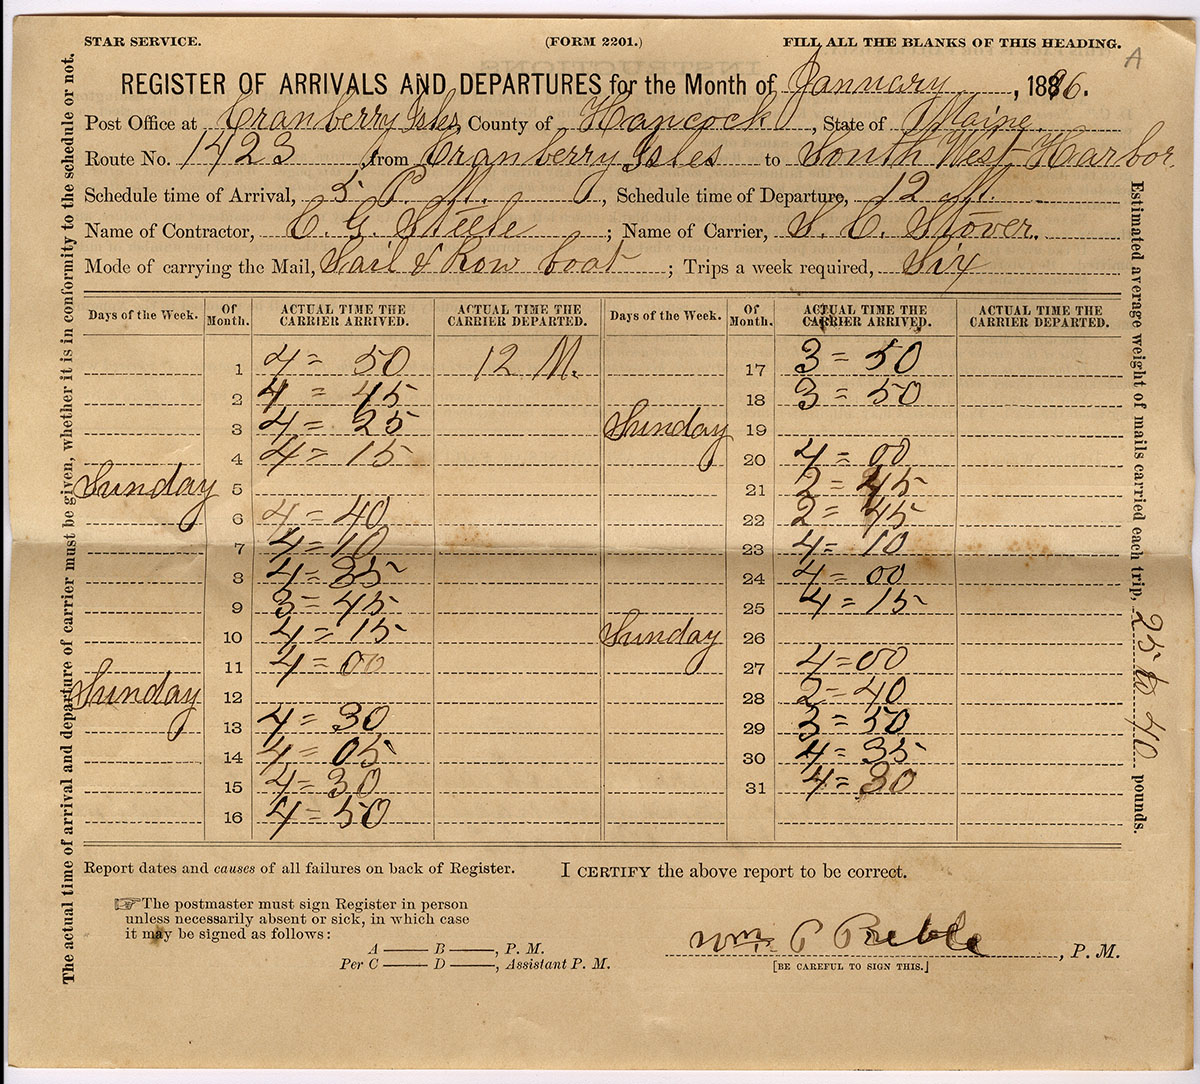 Register of Arrivals and Departures - Post Office 1896